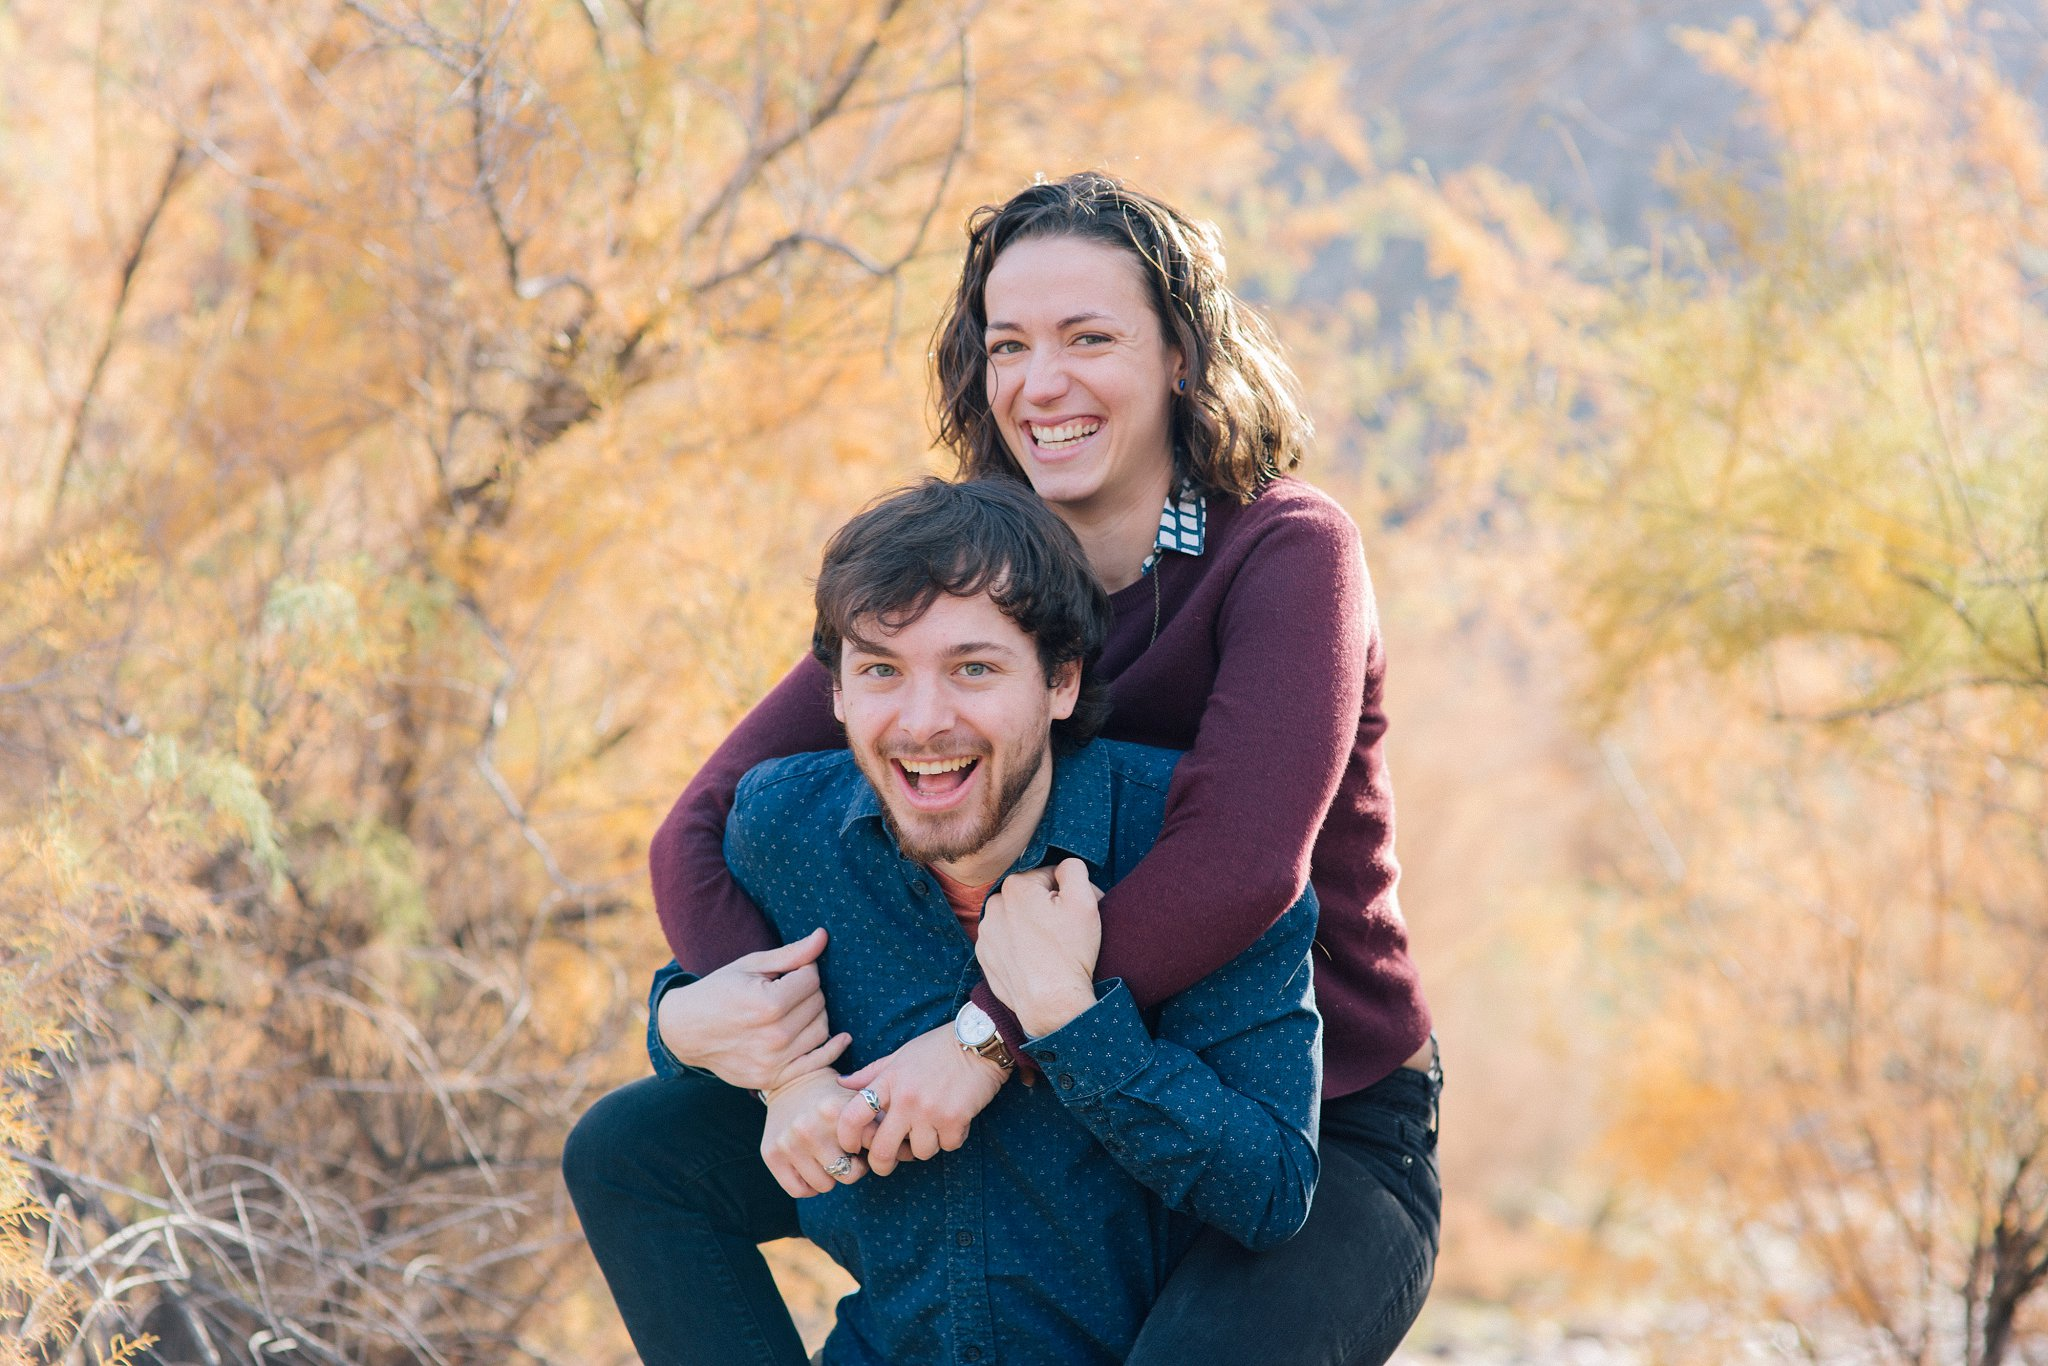 natural candid outdoor nature engagement session in Arizona